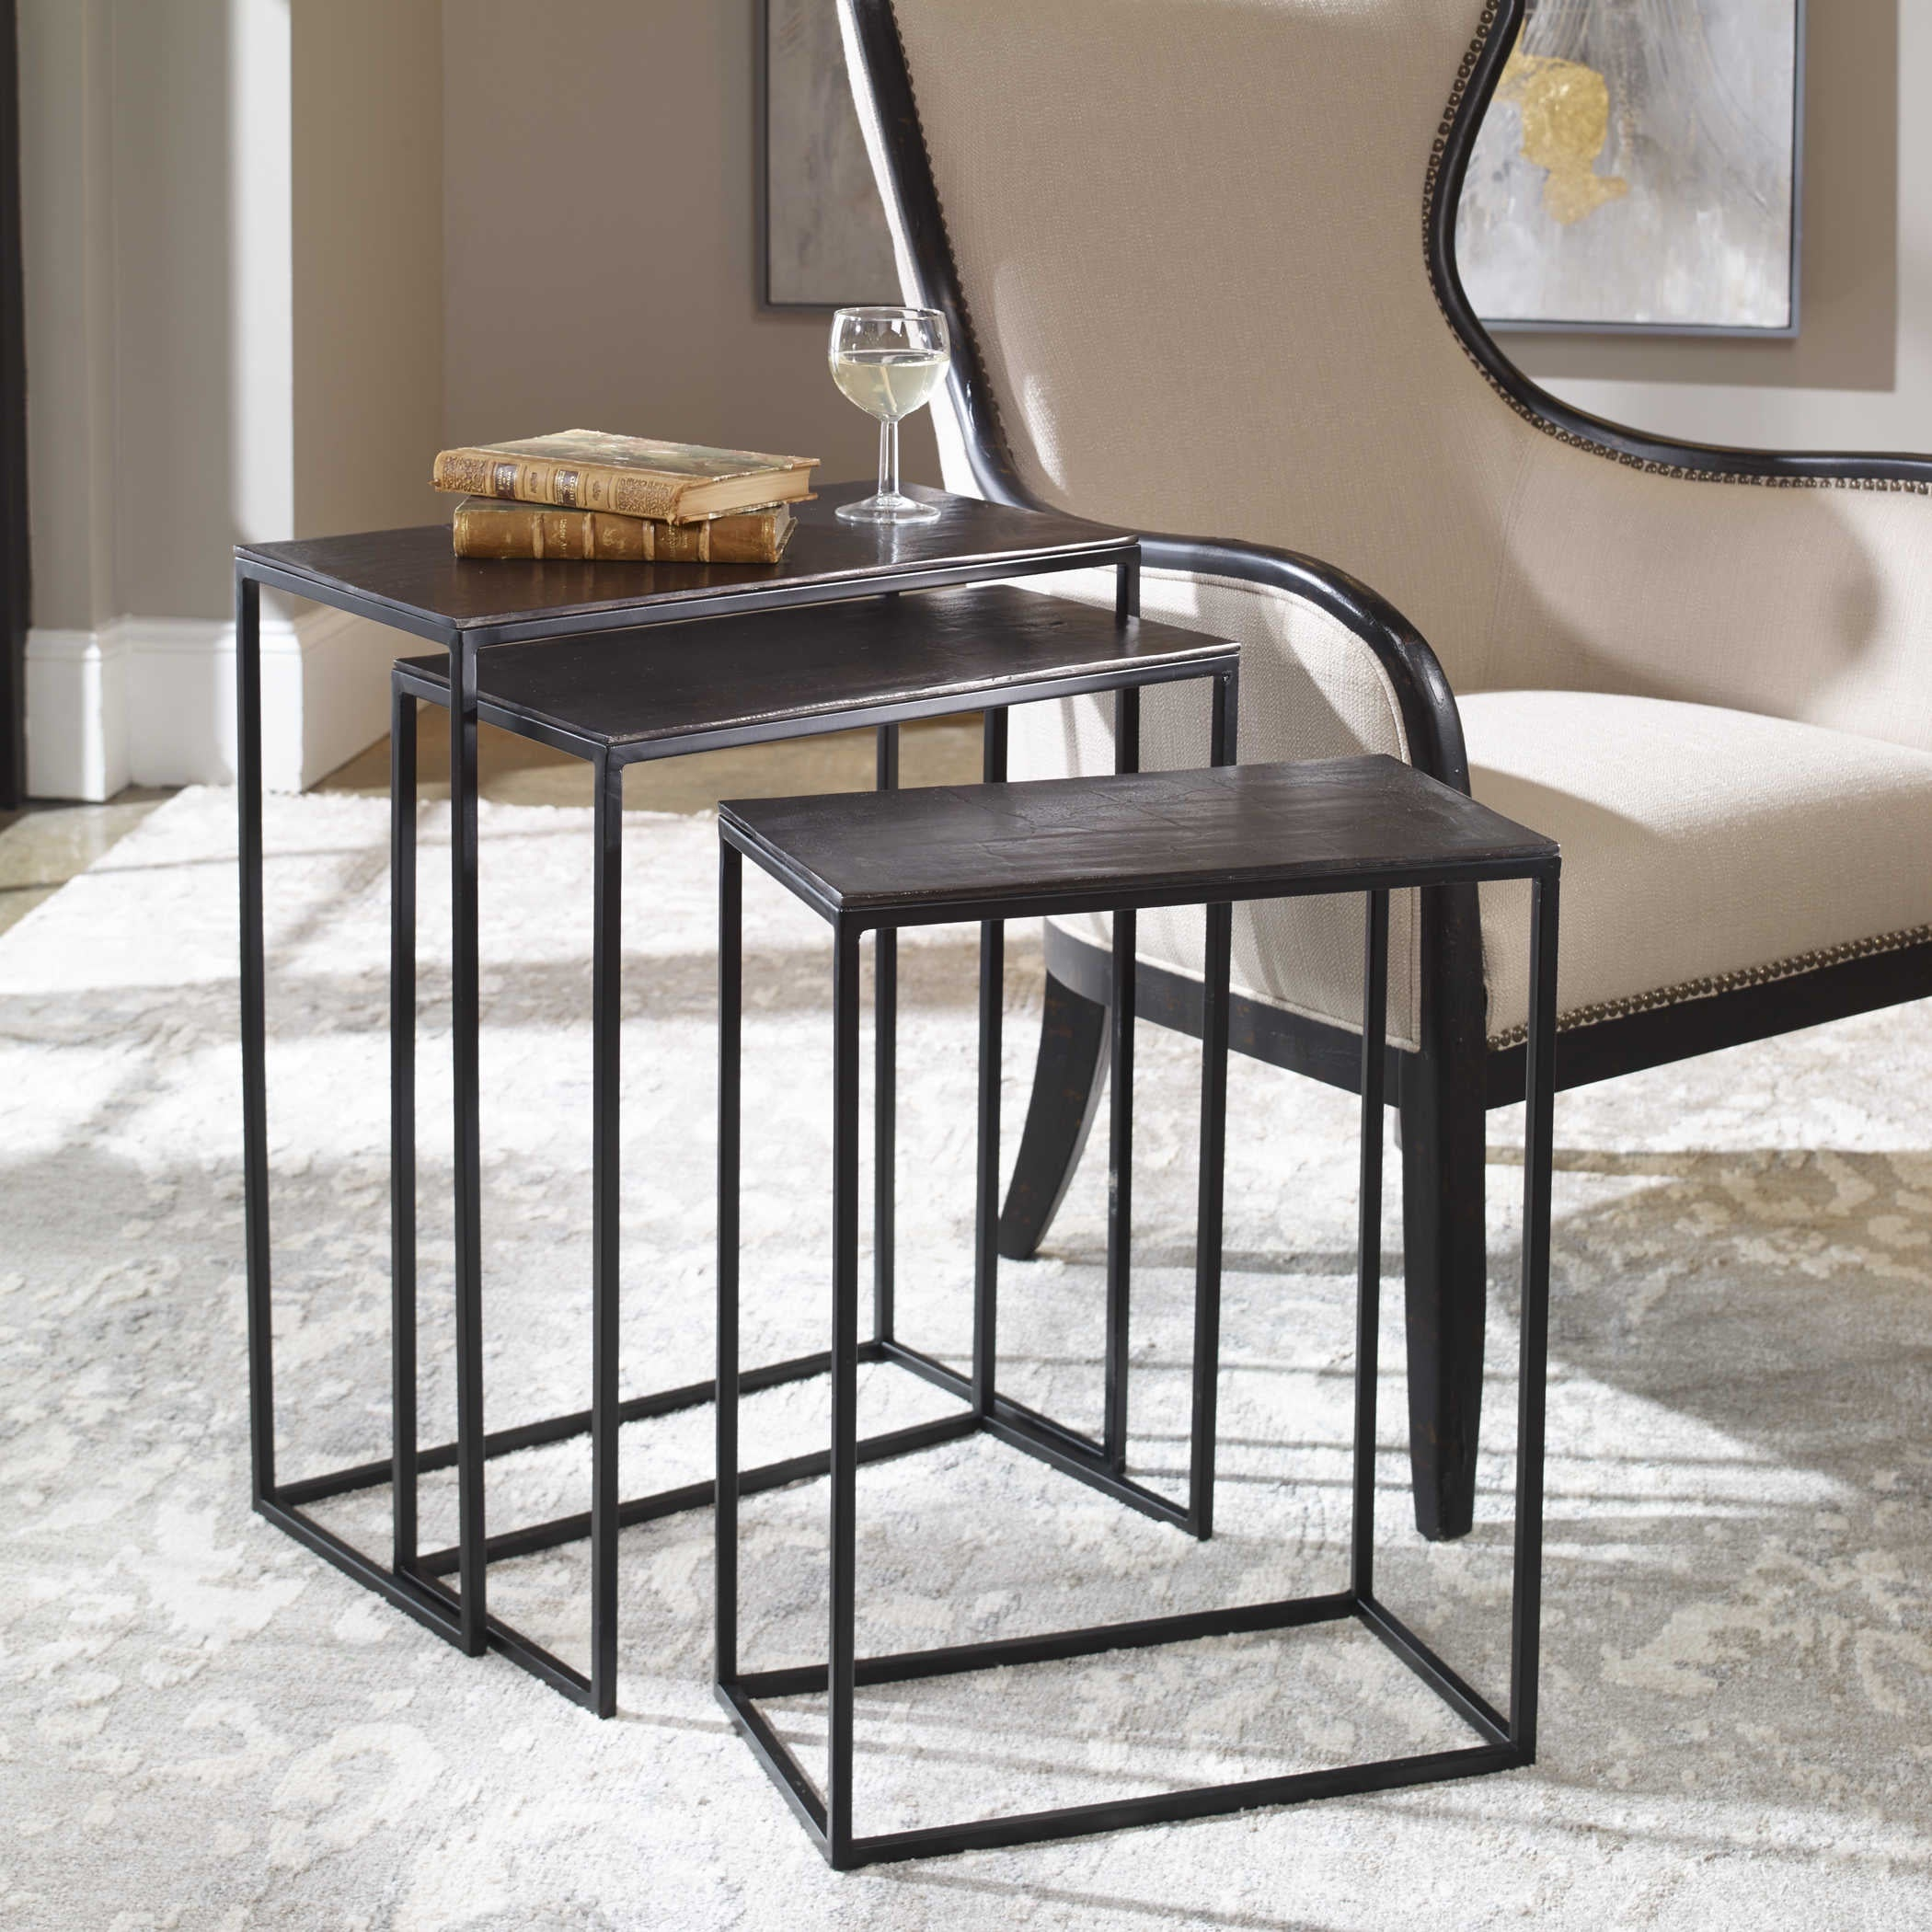 Collins Nesting Tables —Set of 3 - WishBasket